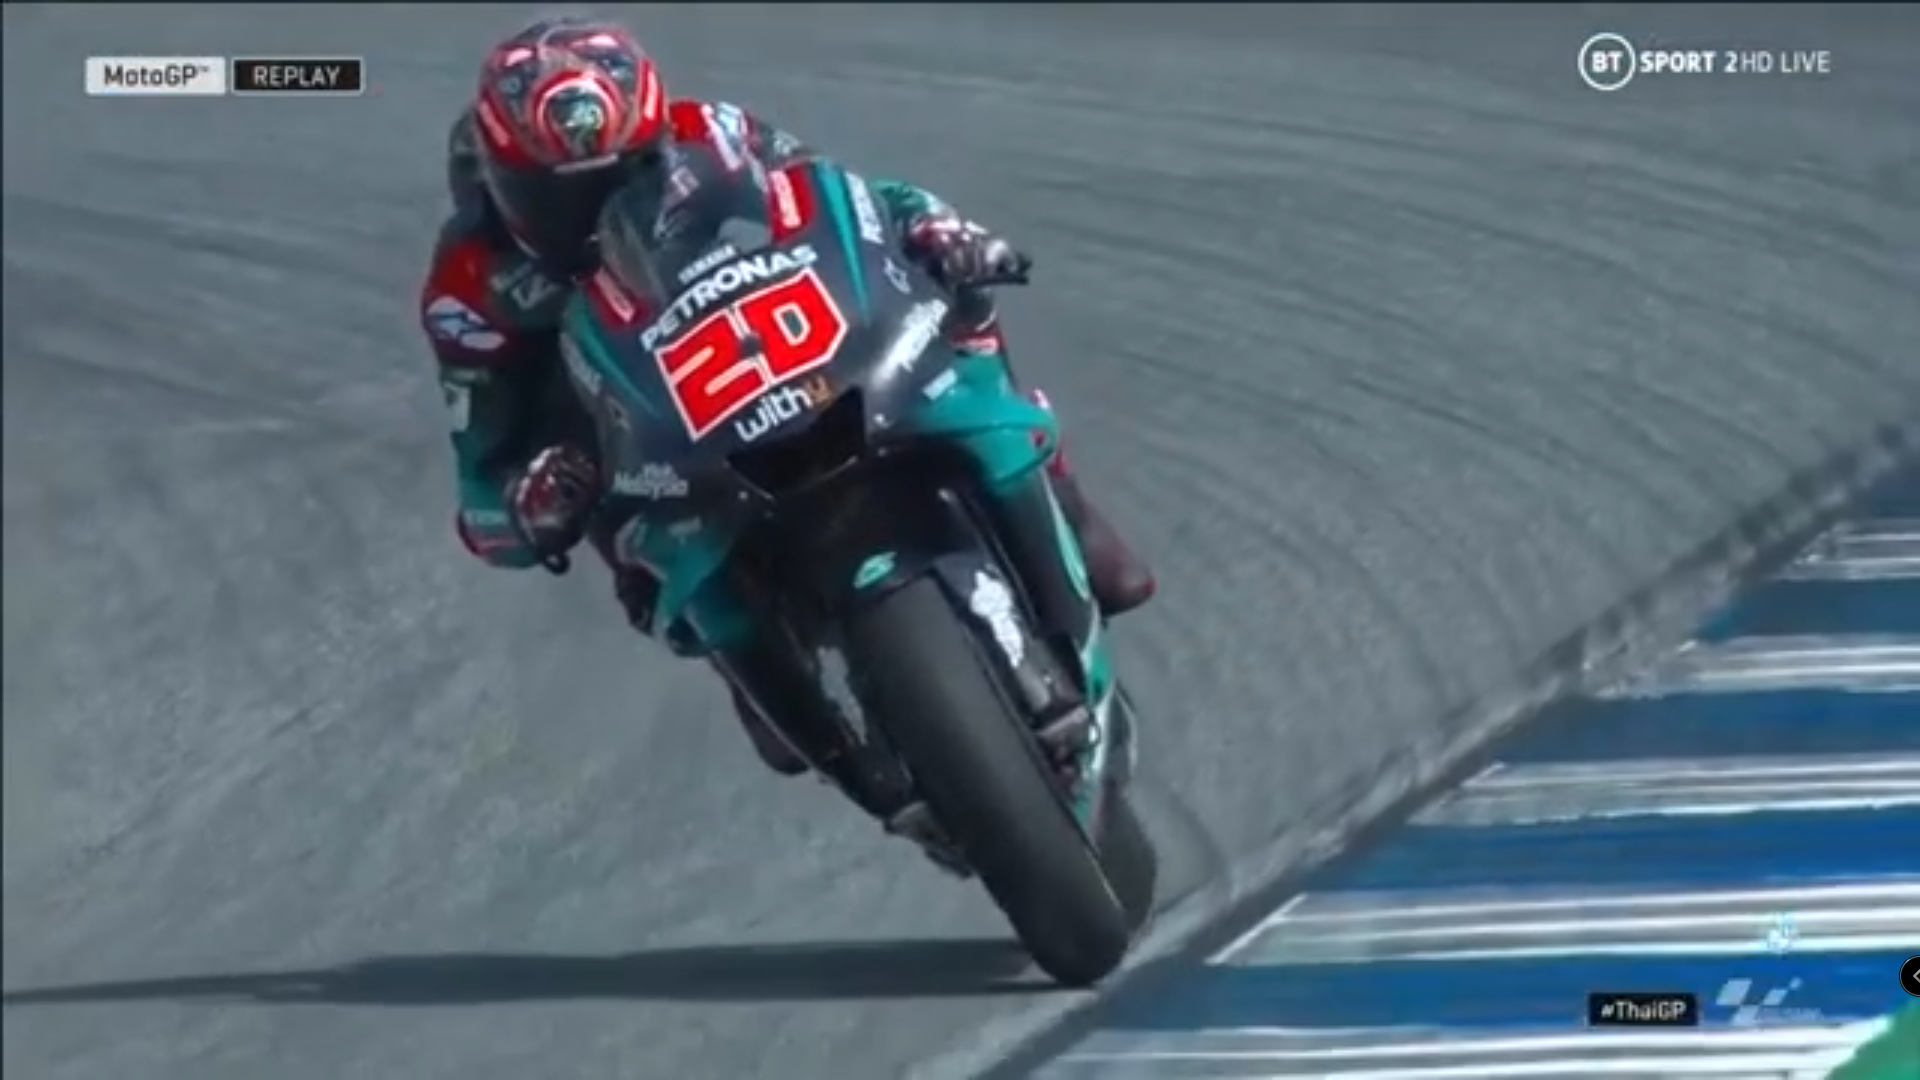 🏁🇹🇭 Thai GP FP4: Quartararo in the last Seconds